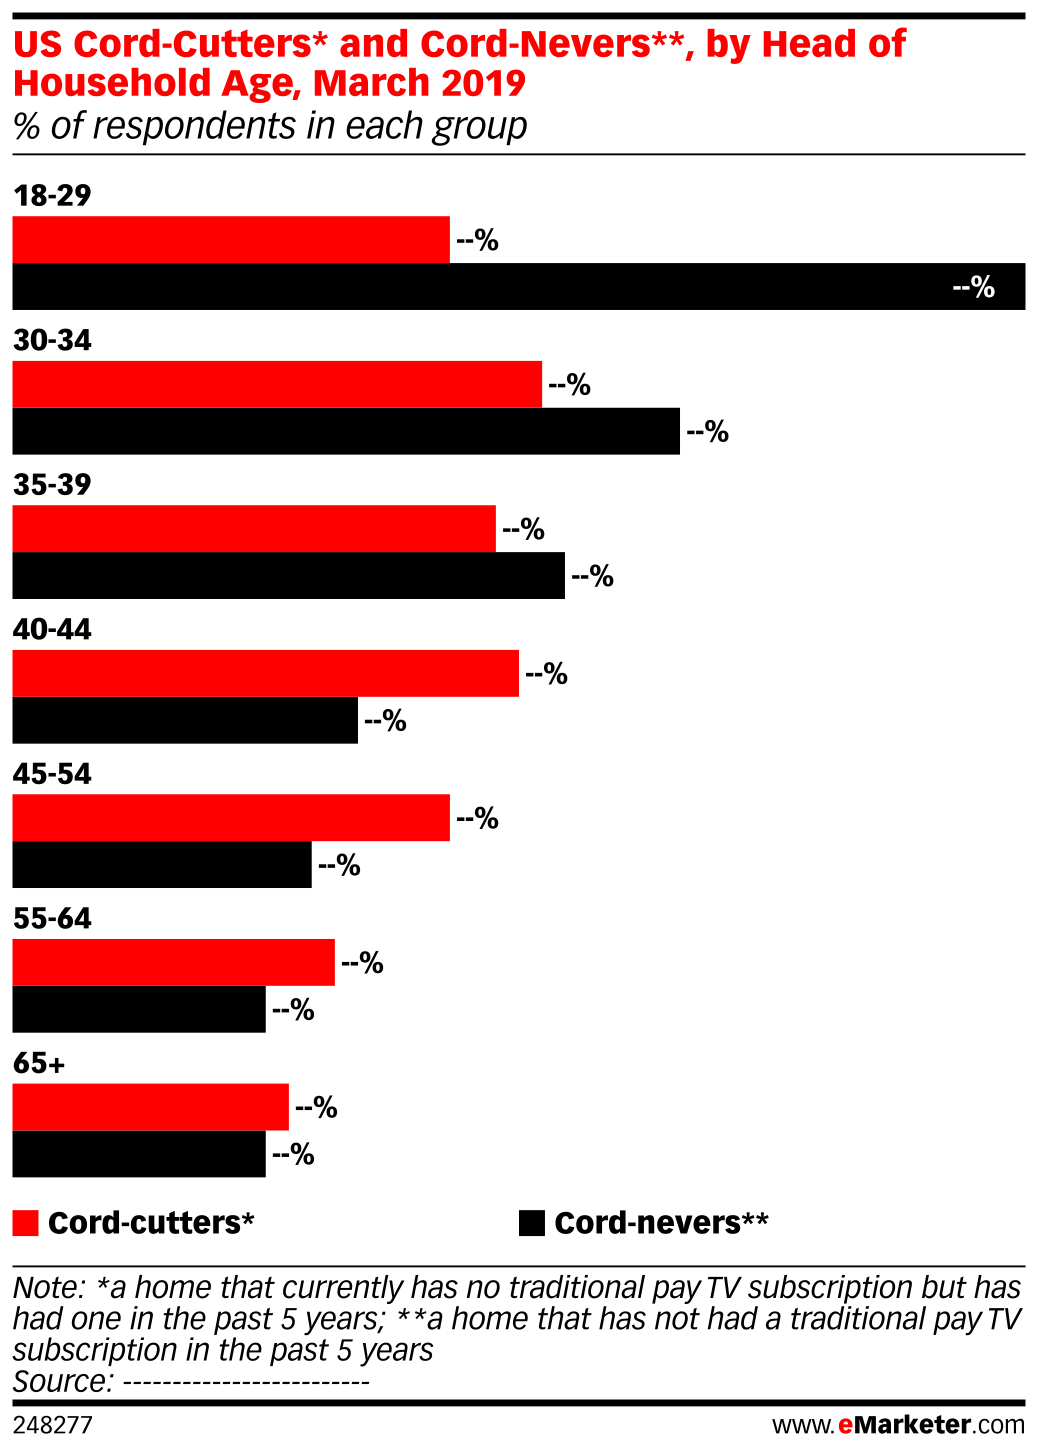 US Cord-Cutters* and Cord-Nevers**, by Head of Household Age, March 2019 (% of respondents in each group)